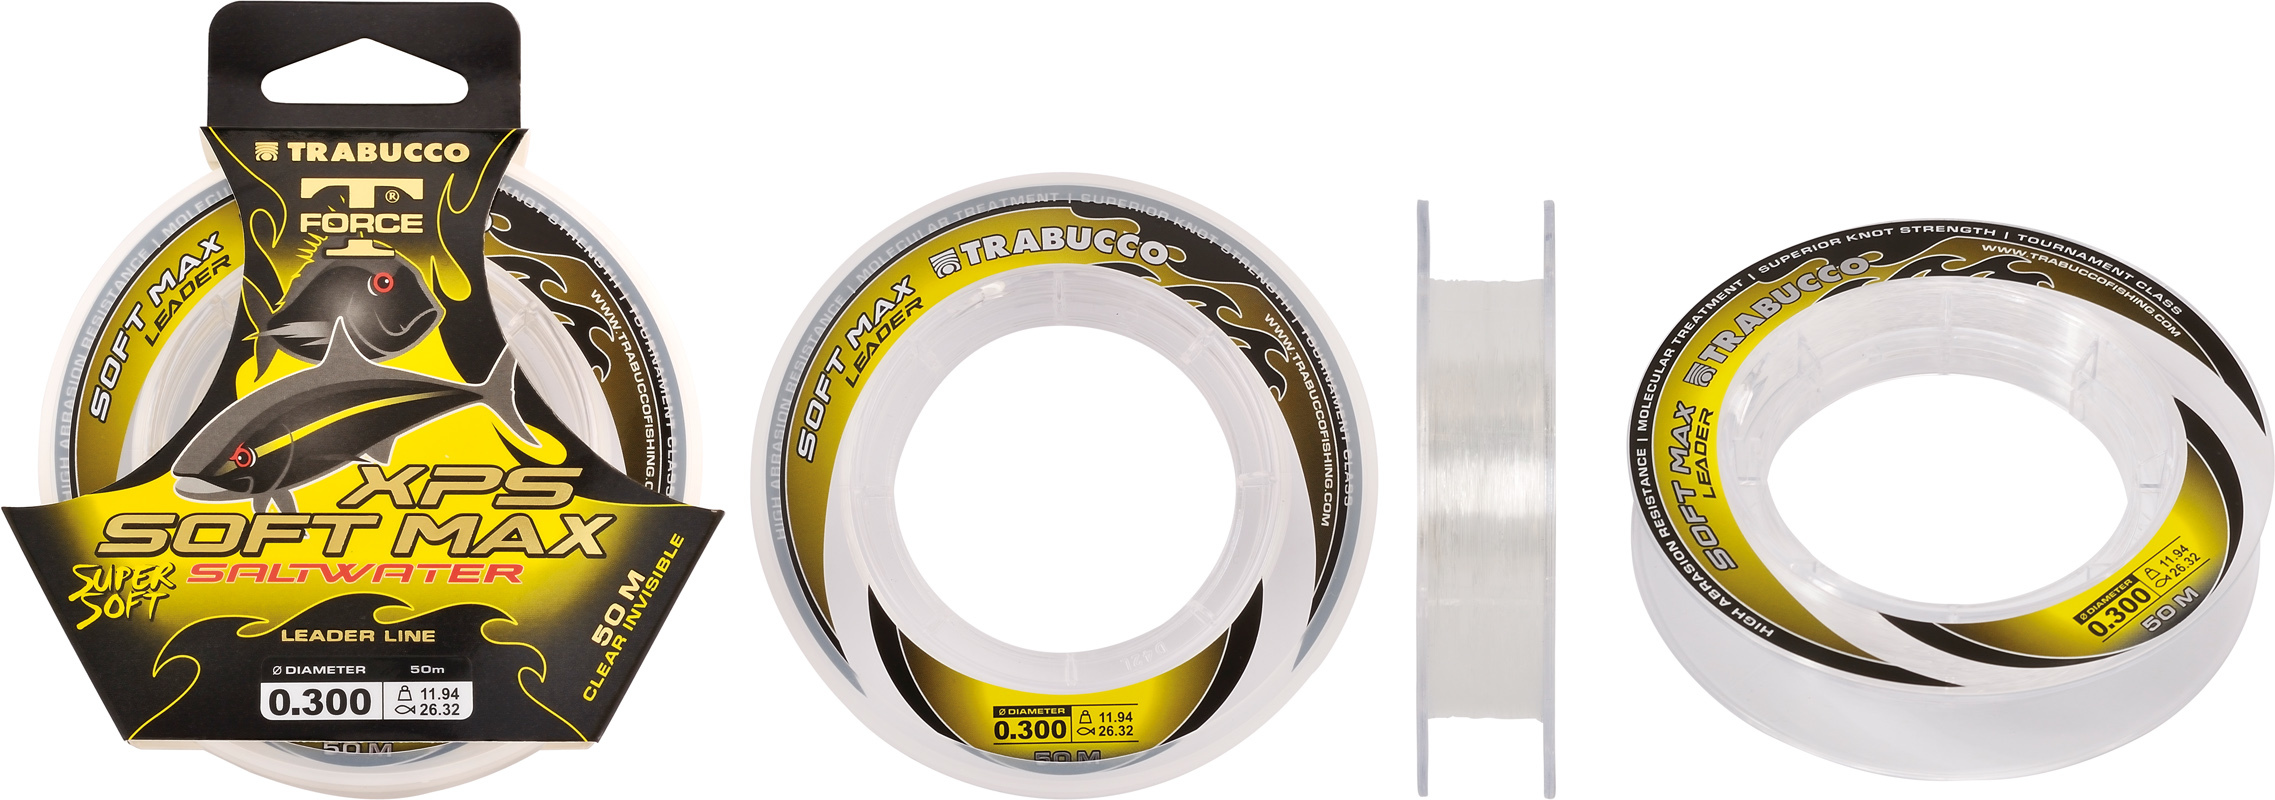 XPS Soft Max Leader  50m spools  for rig bodies , leader line  and traces  sale price 00317